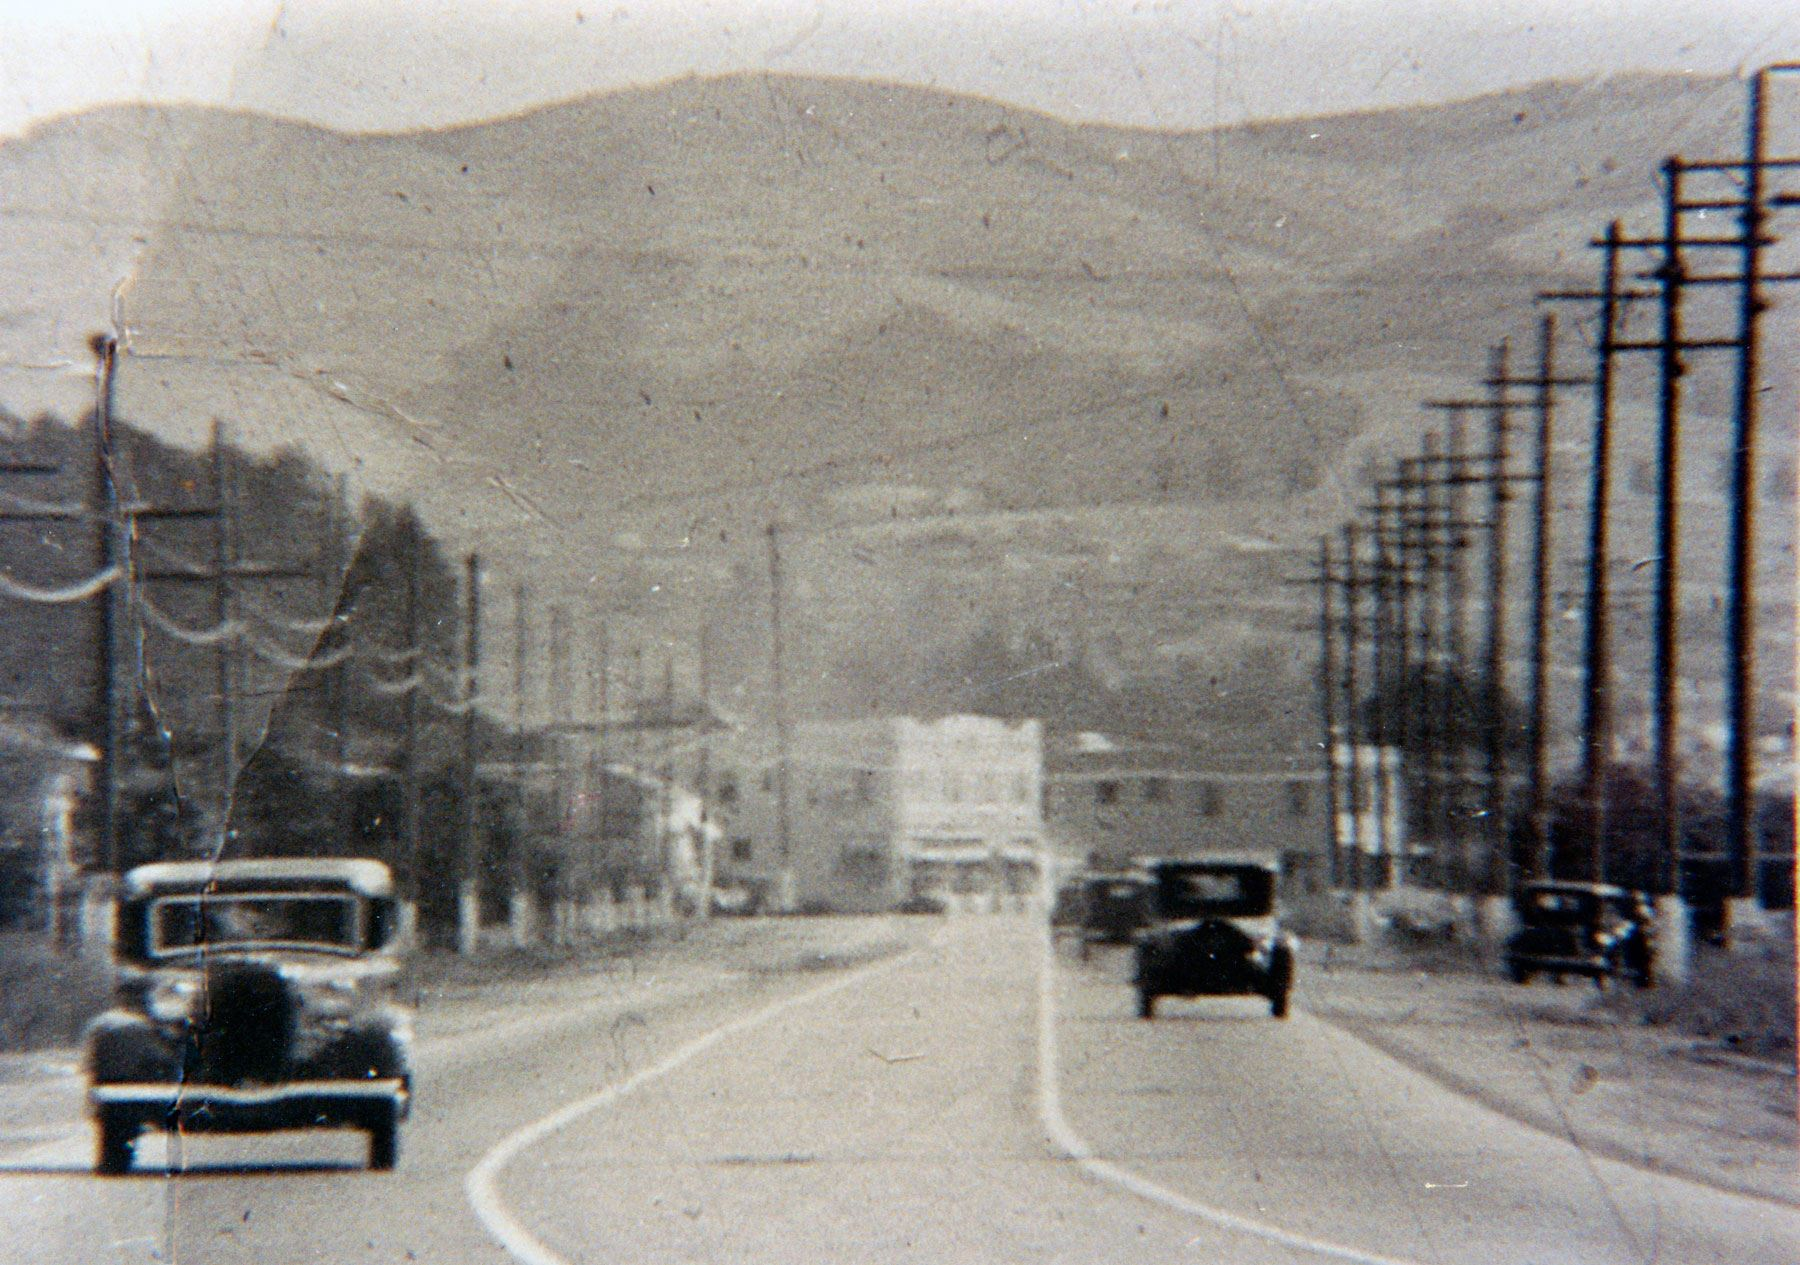 CastroValleyHistory-CVBlvd-Old-Cars